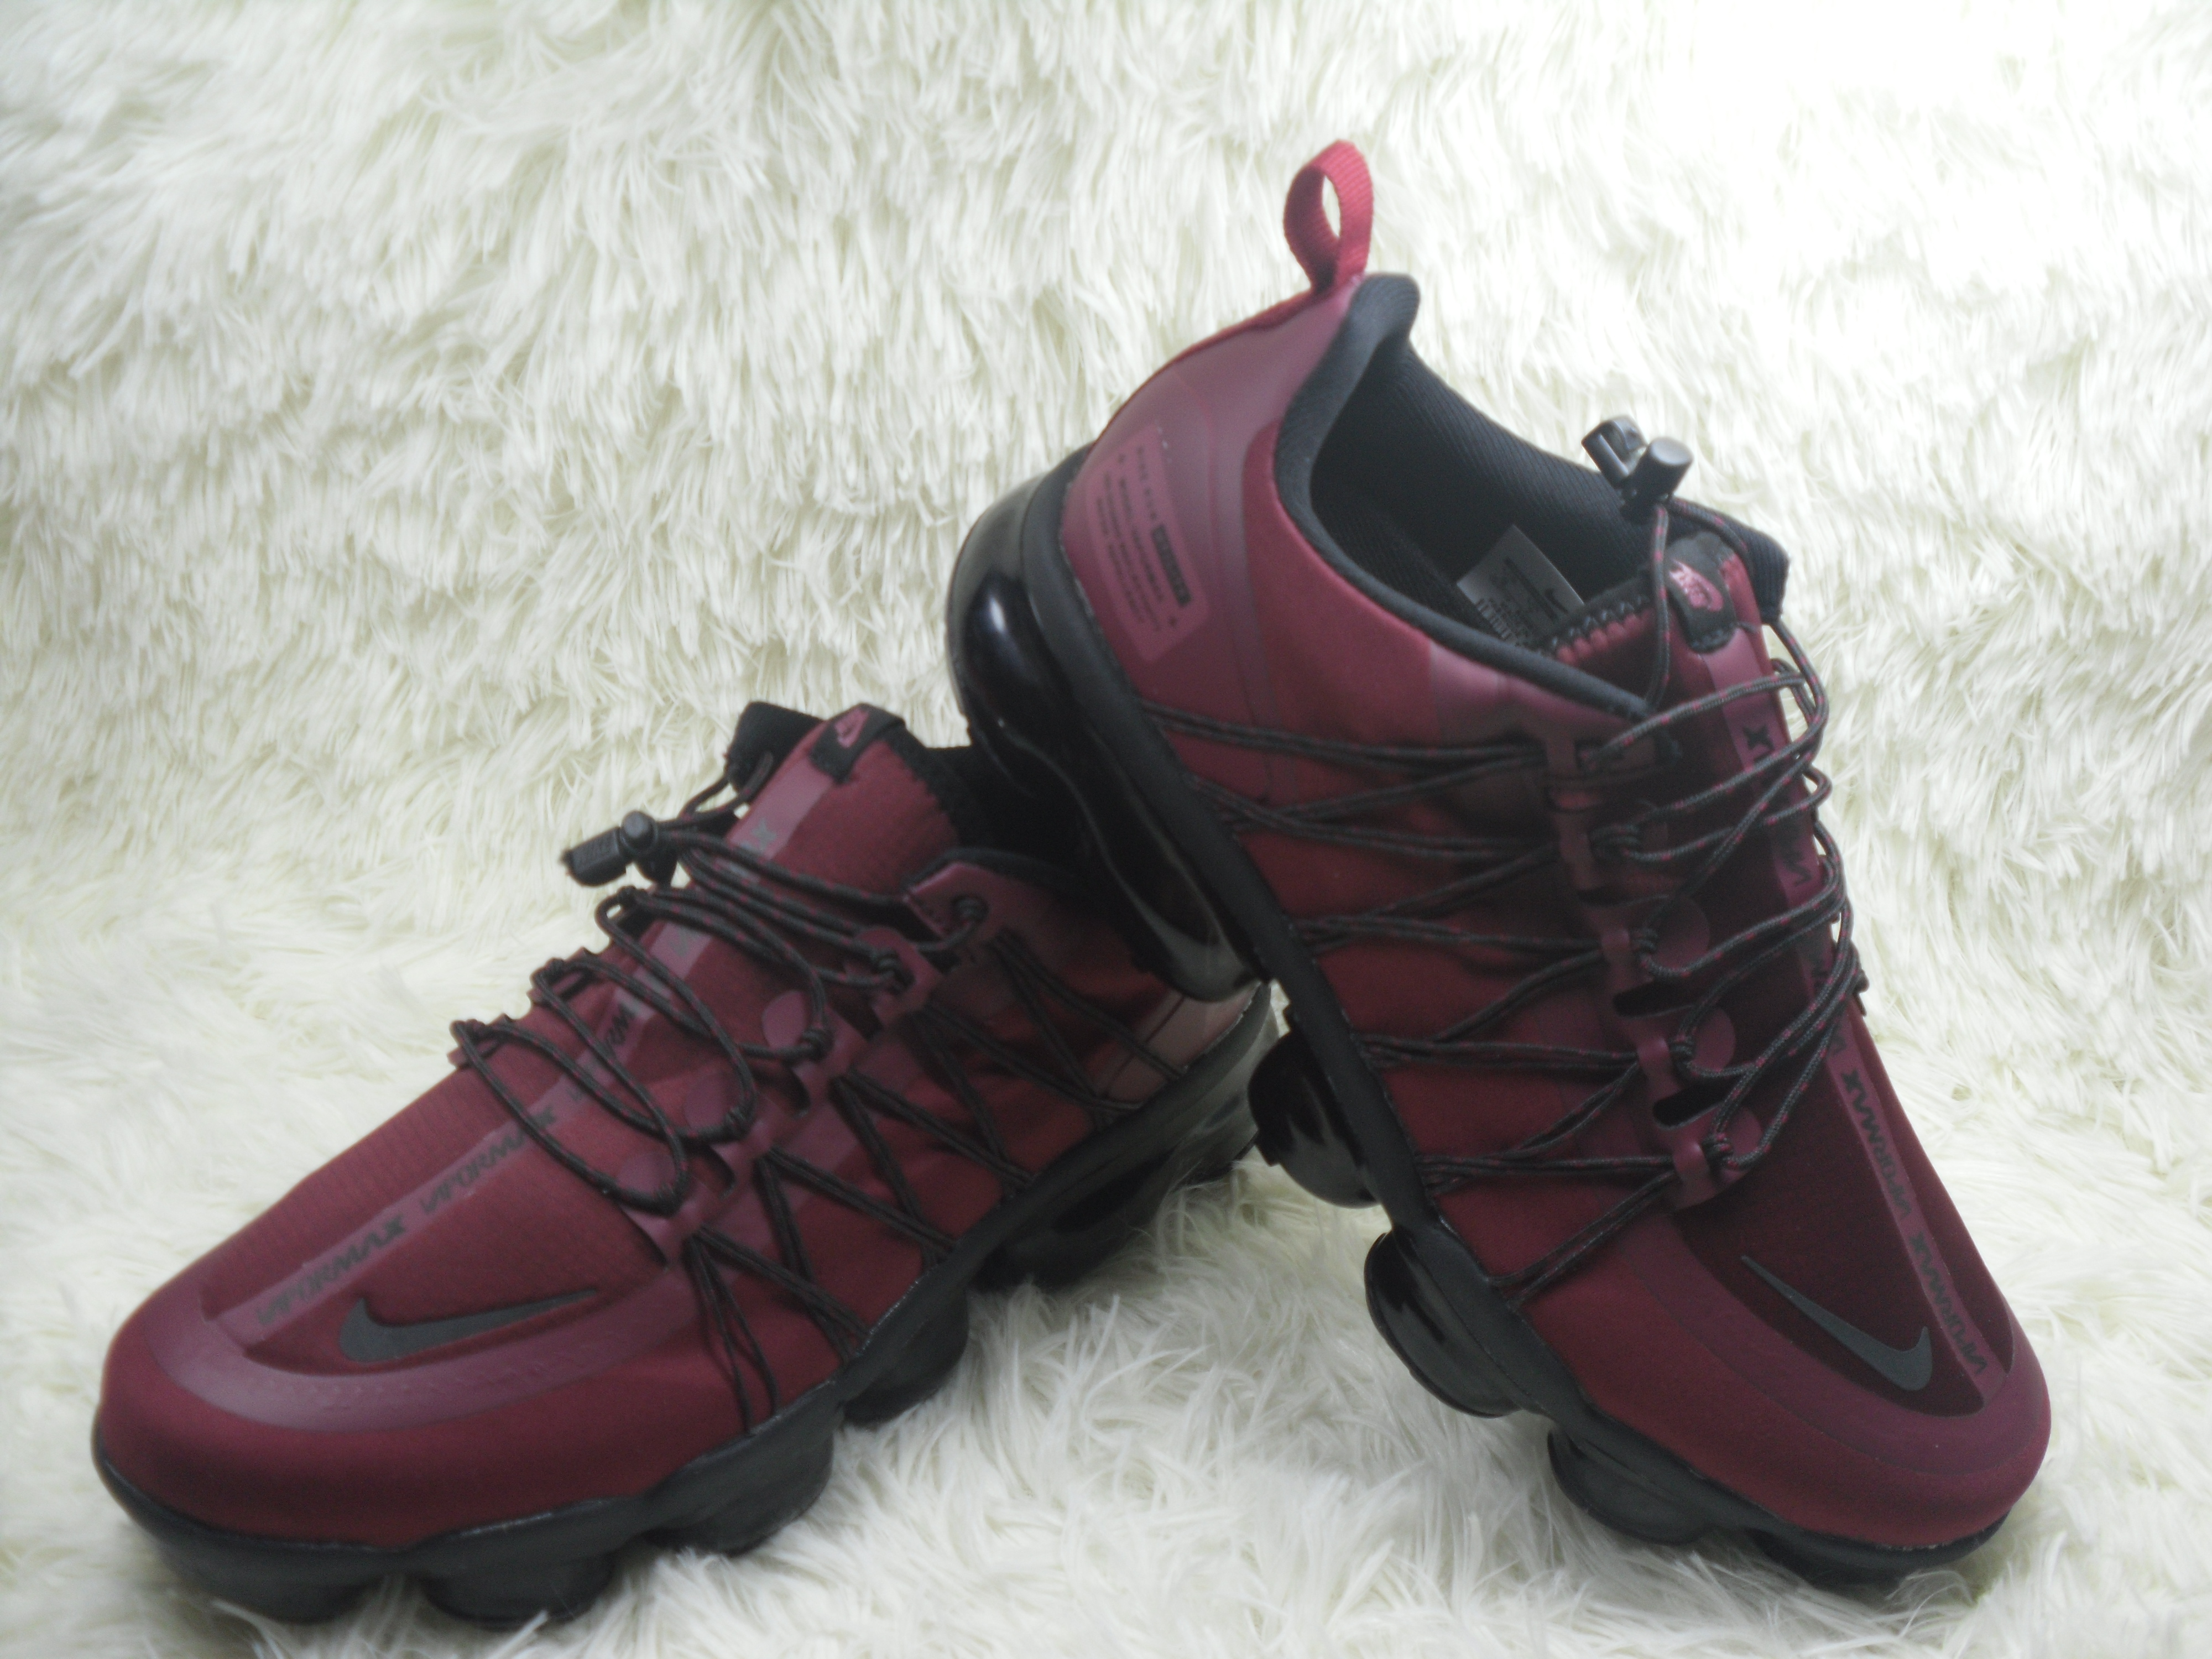 Men NIKE SP W NIKE AIR VAPORMAX RUN UTLTY Wine Red Black Shoes